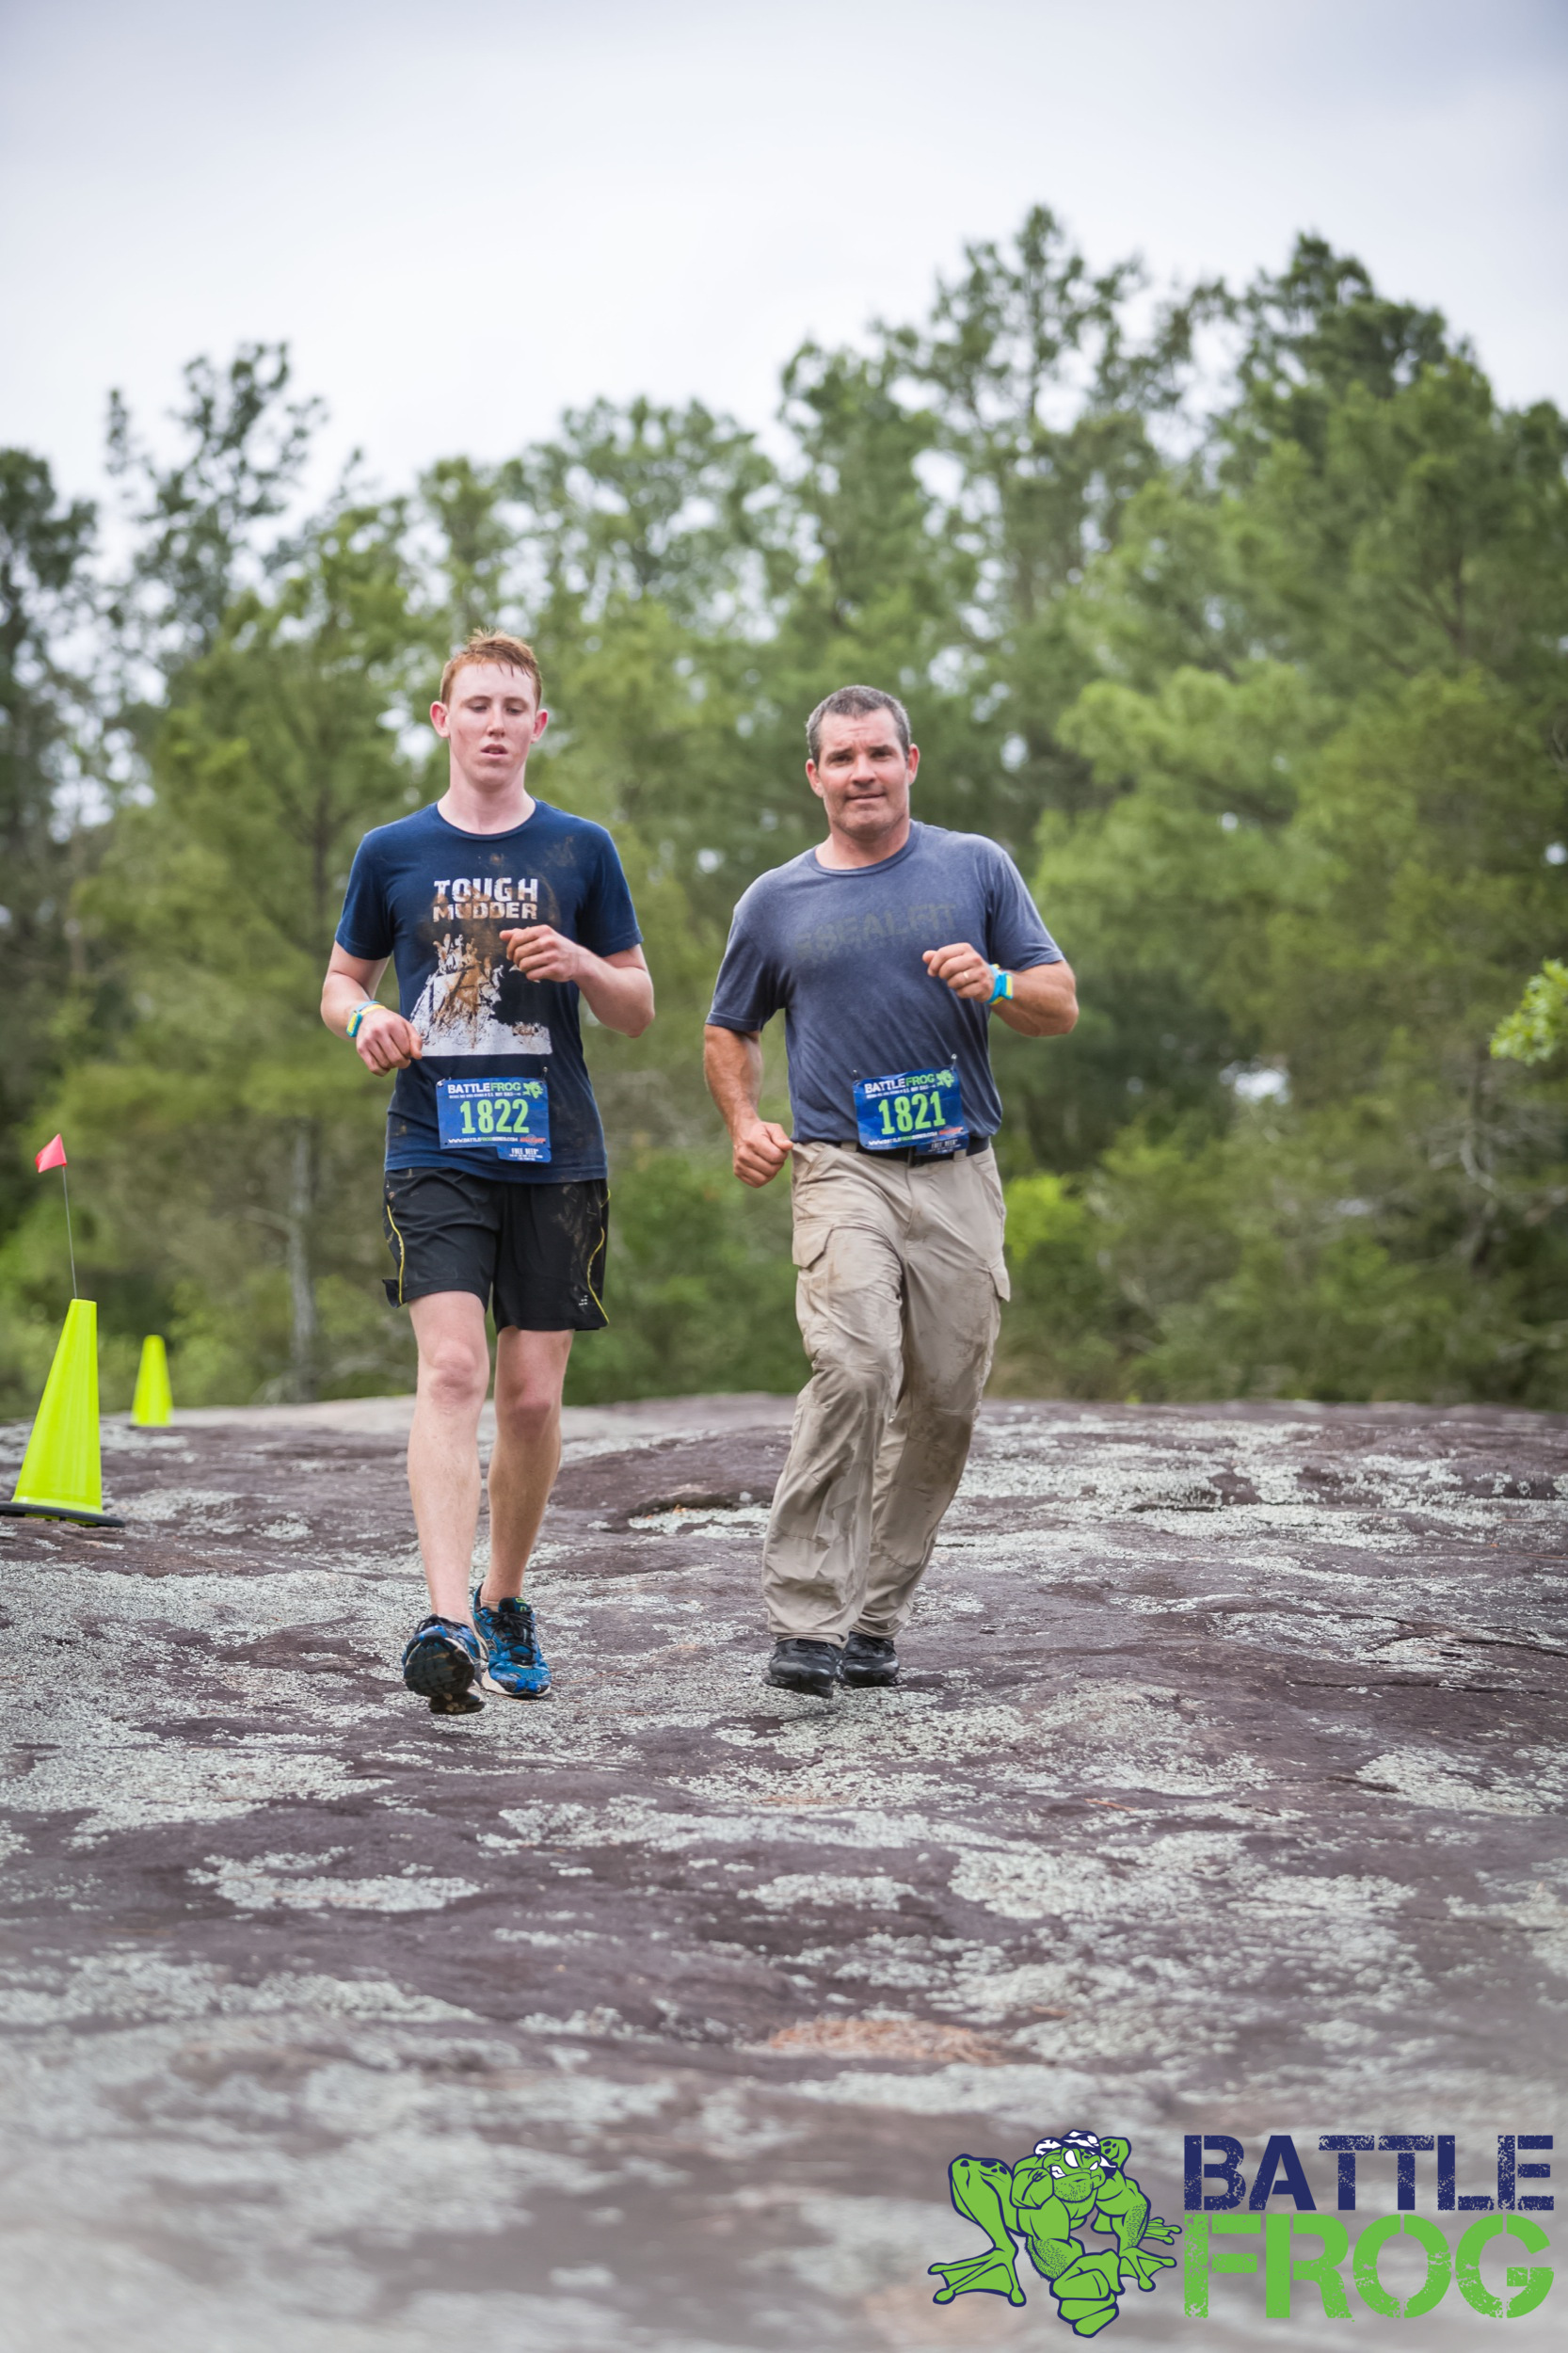 Me and my son, Turner, running the Battlefrog, 15K obstacle course